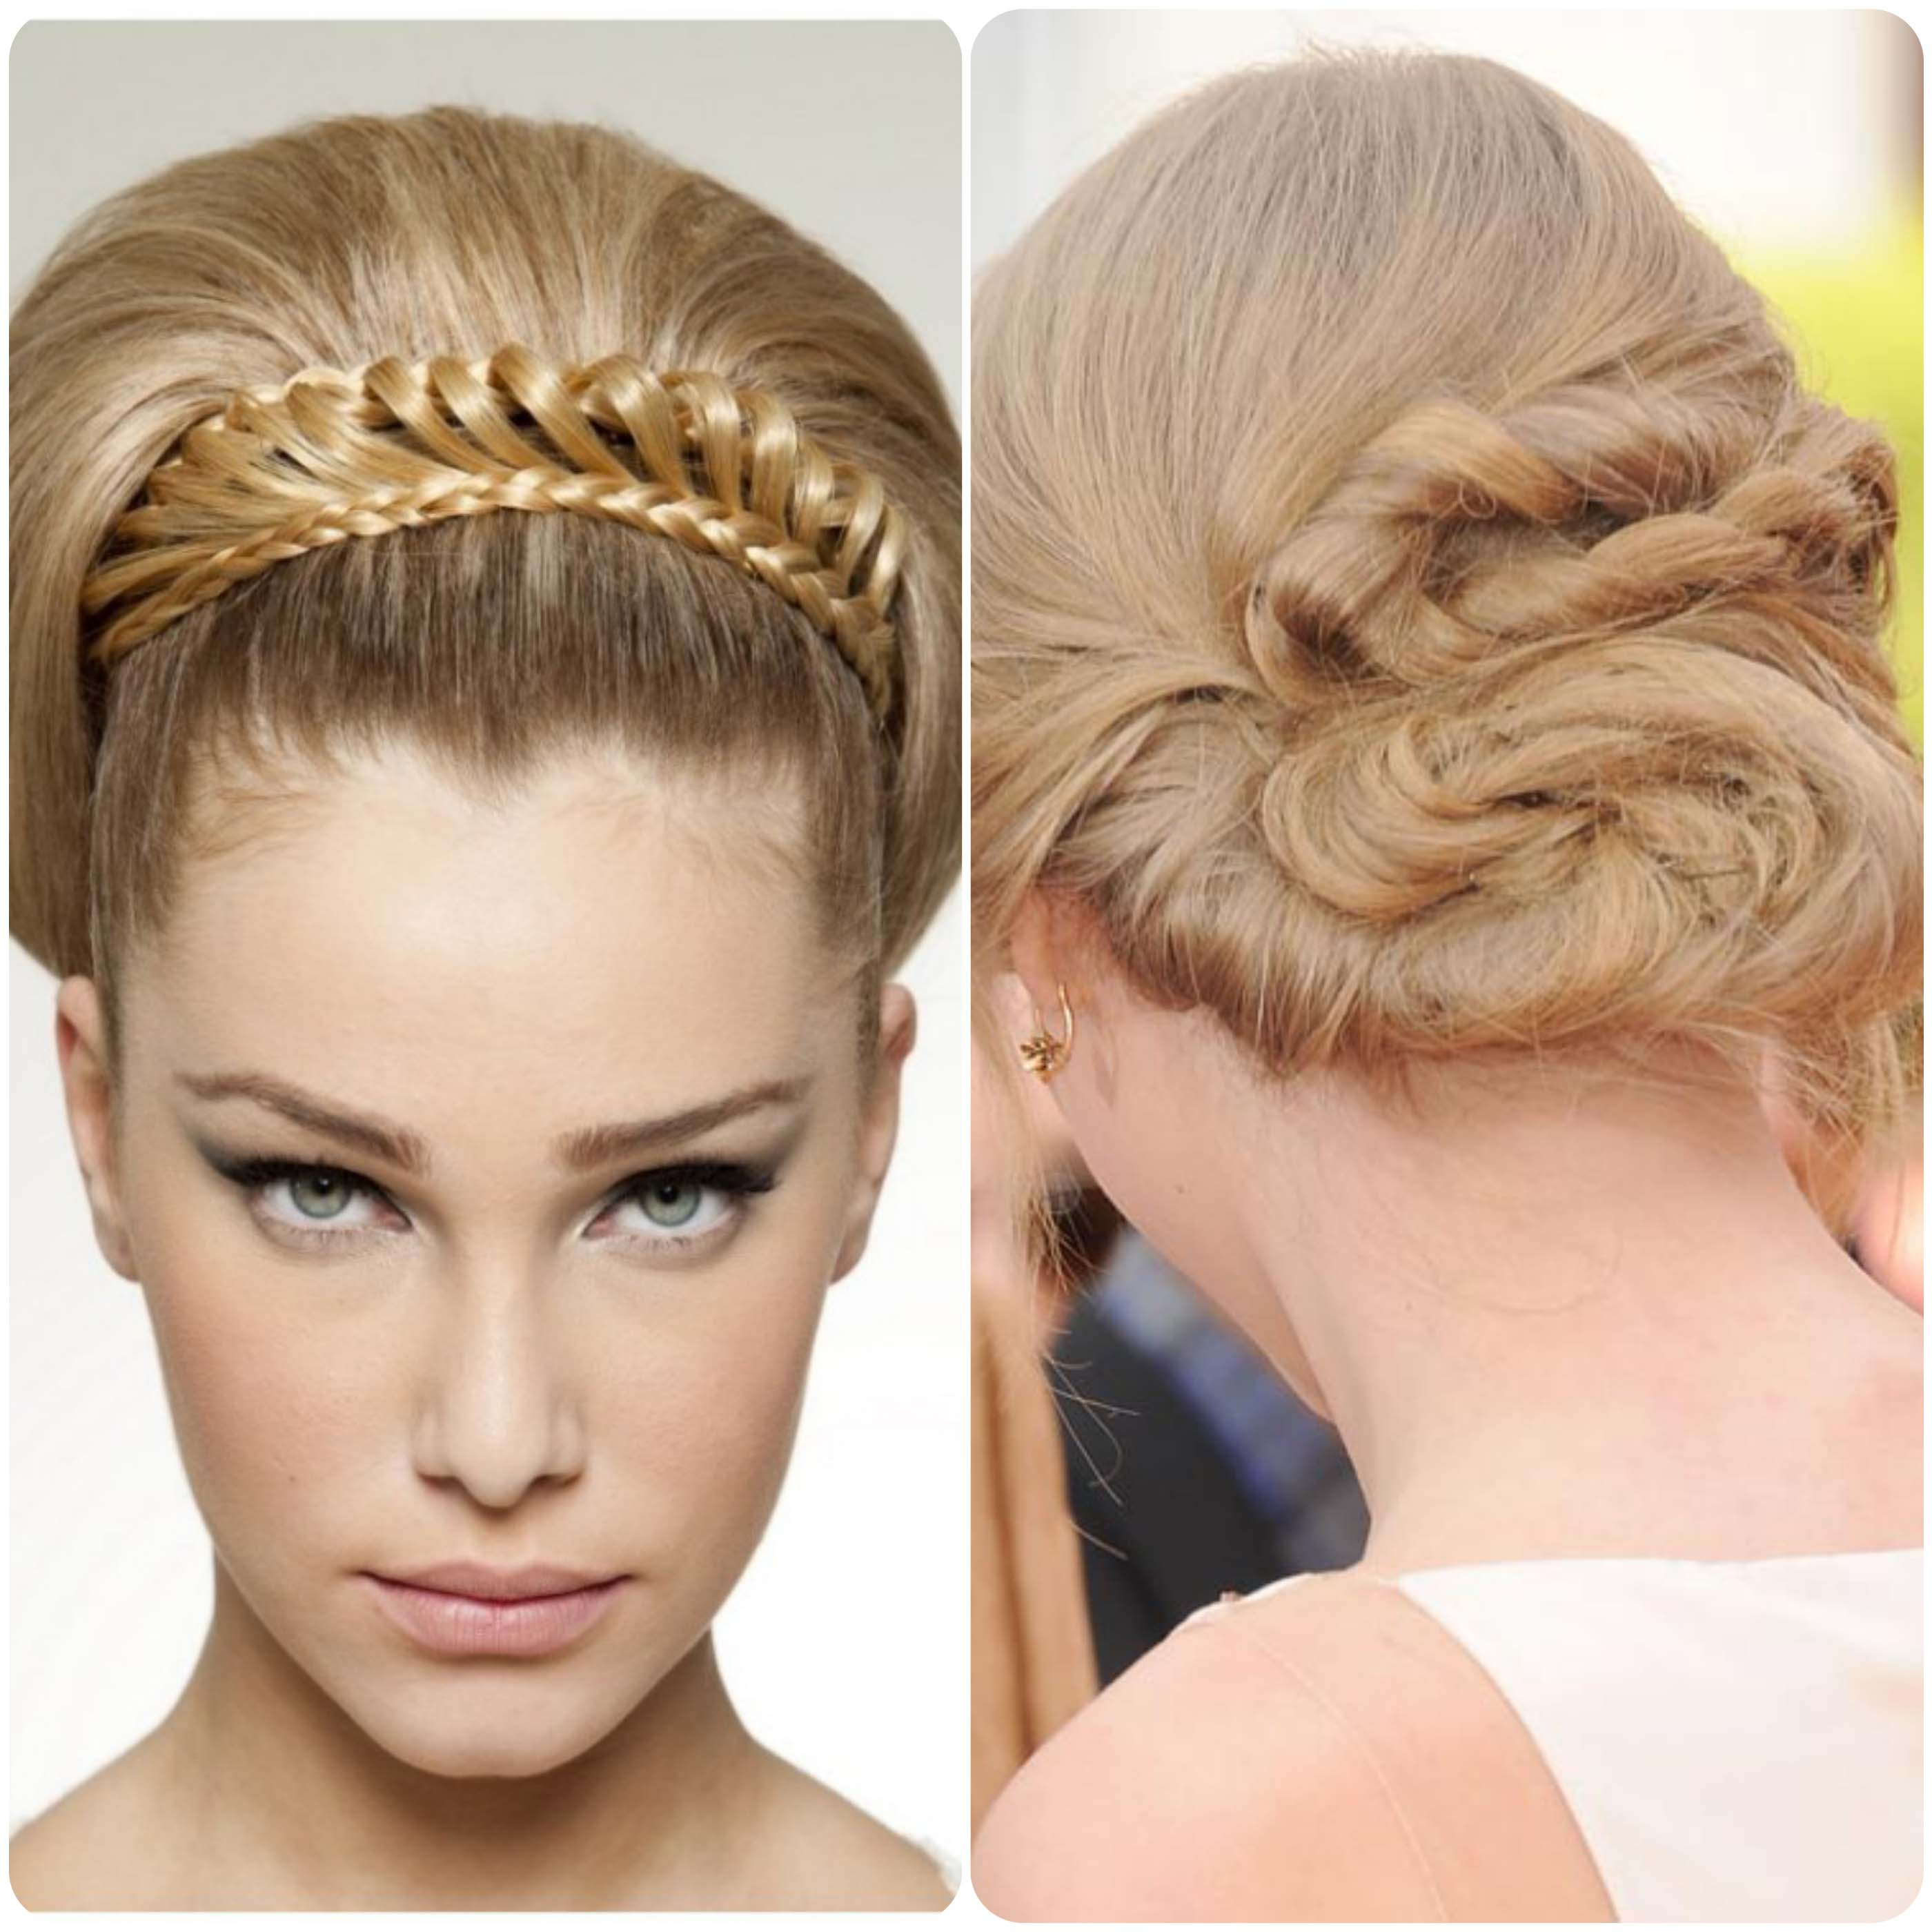 Exlusive winter hairstyles to 10...